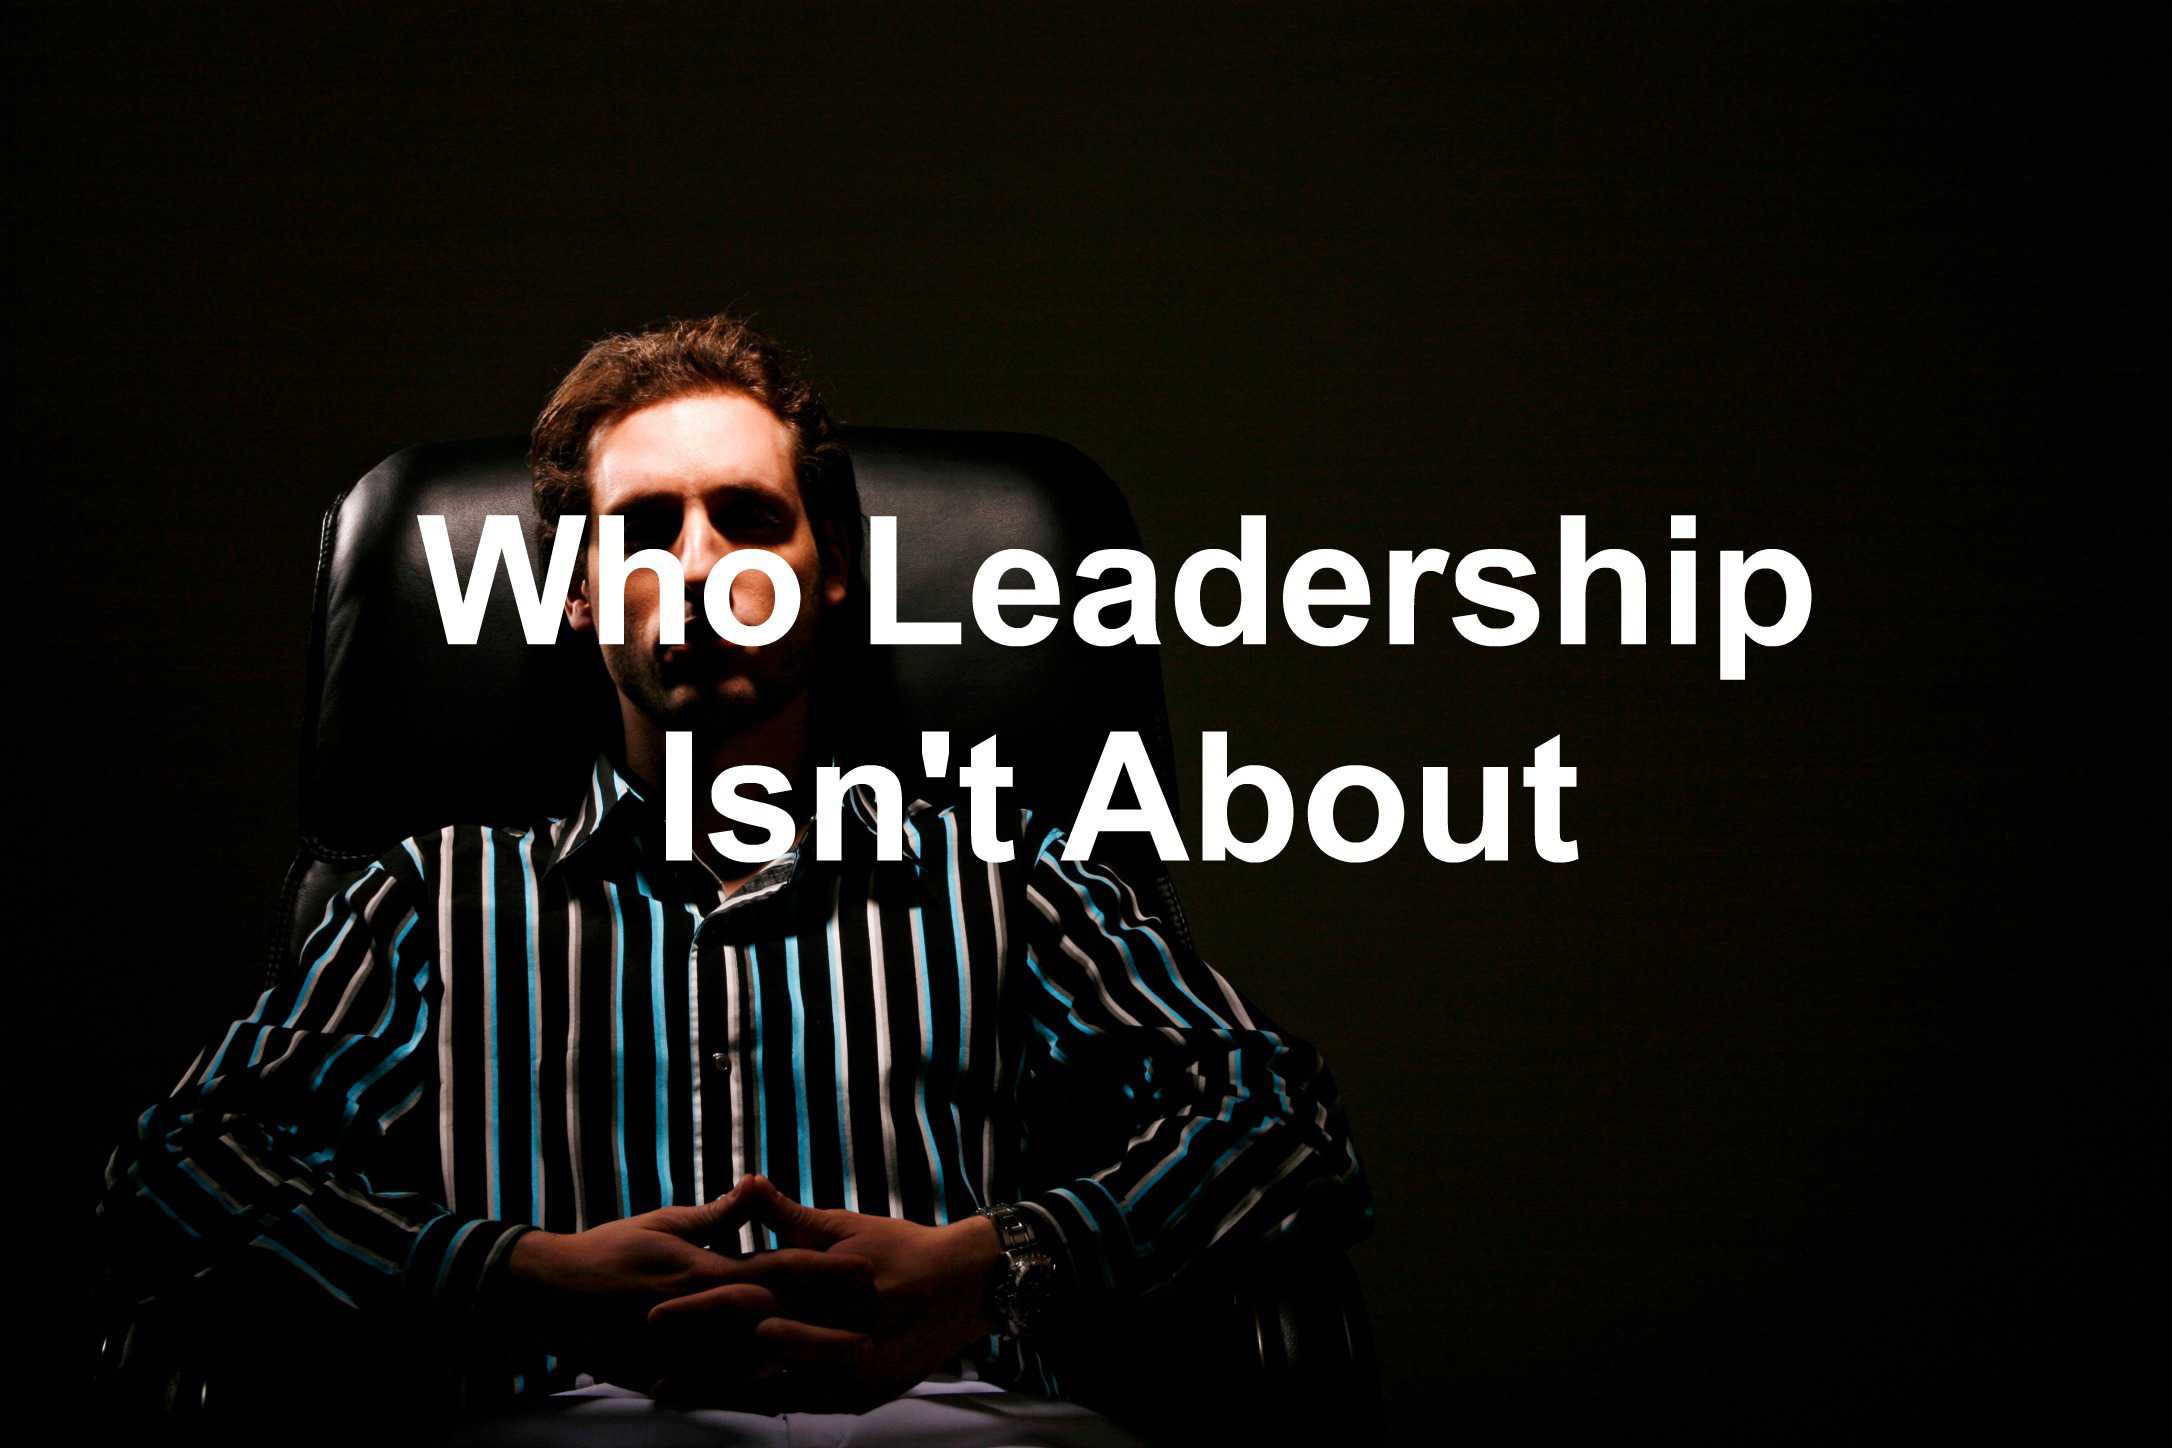 Leadership is about others